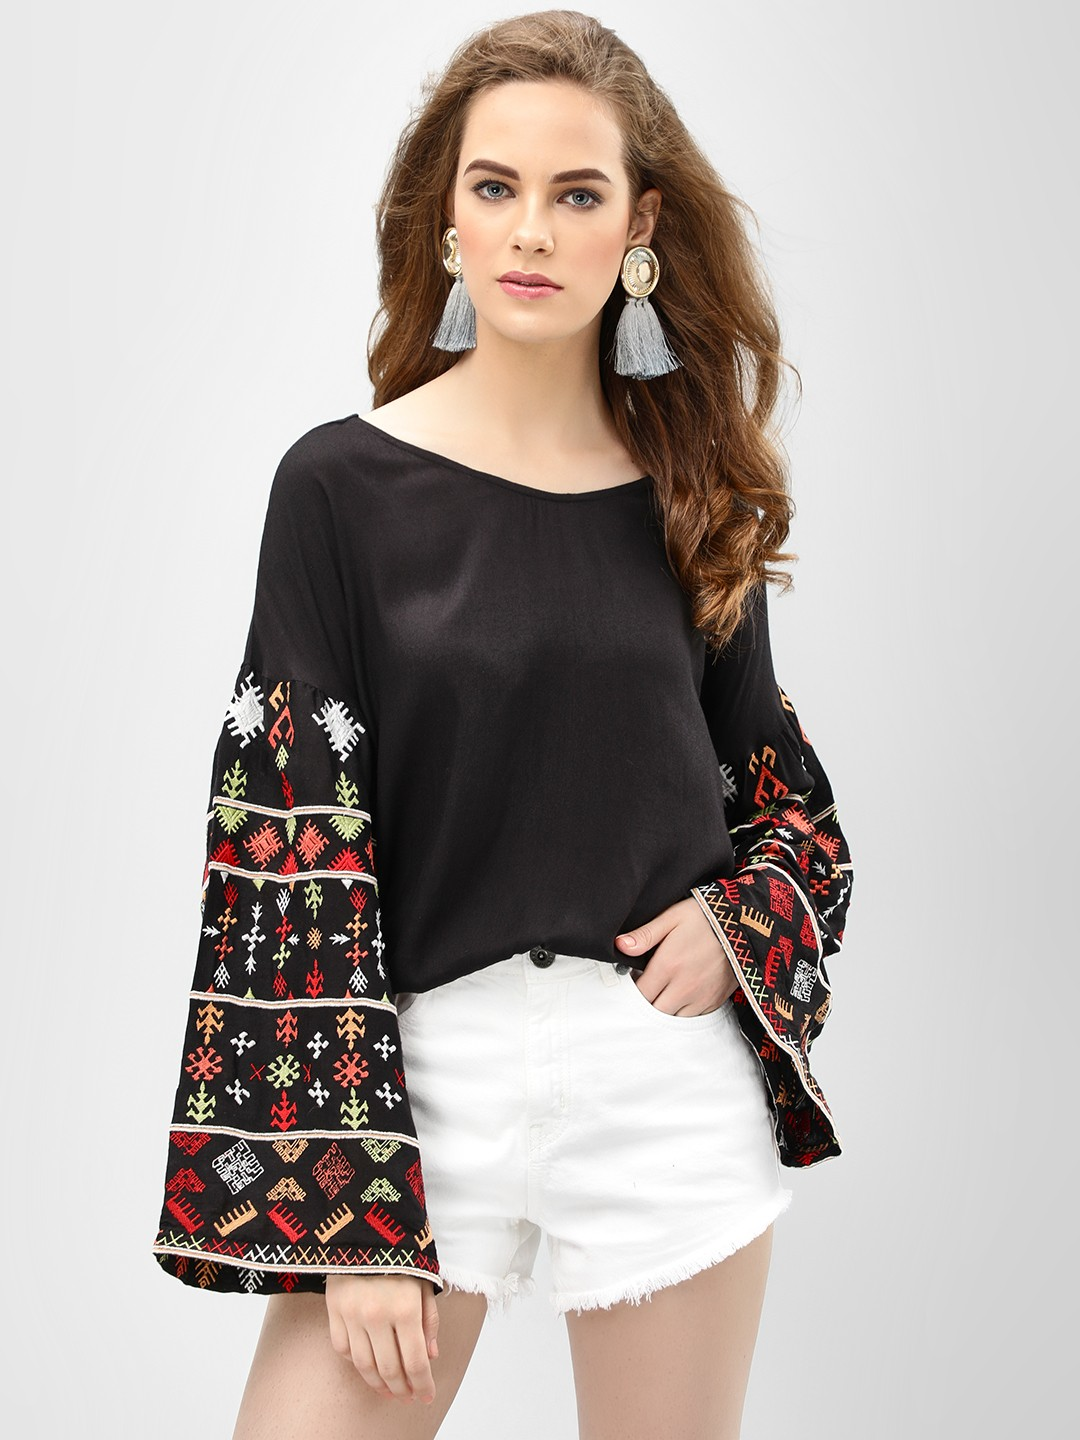 Buy Rena Love Floral Print Peplum Top For Women: Buy Rena Love Black Blouse With Embroidered Sleeves For